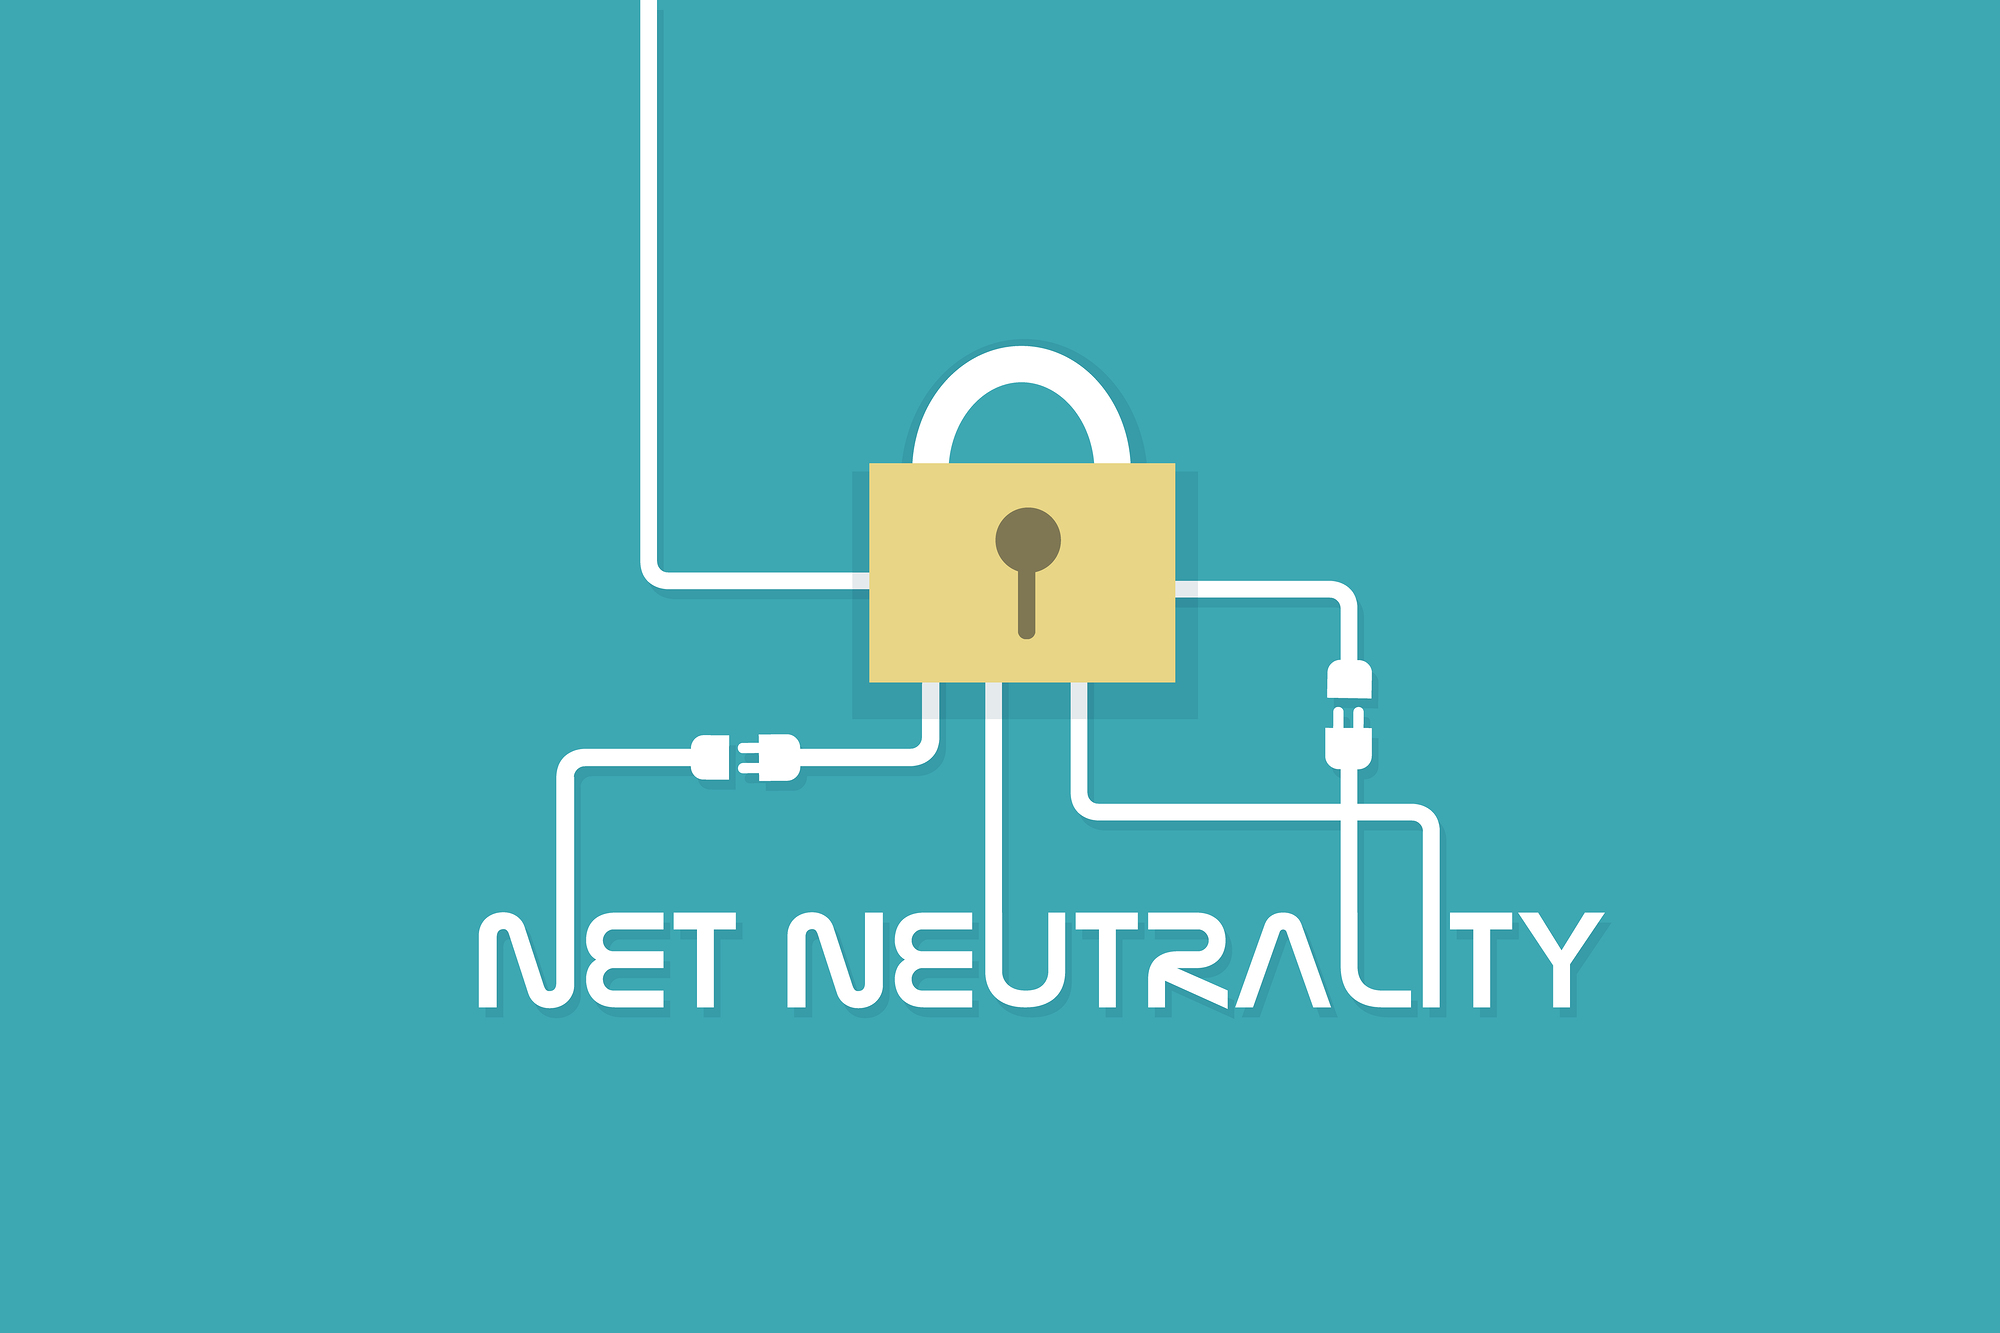 Net Neutrality network internet concept vector illustration